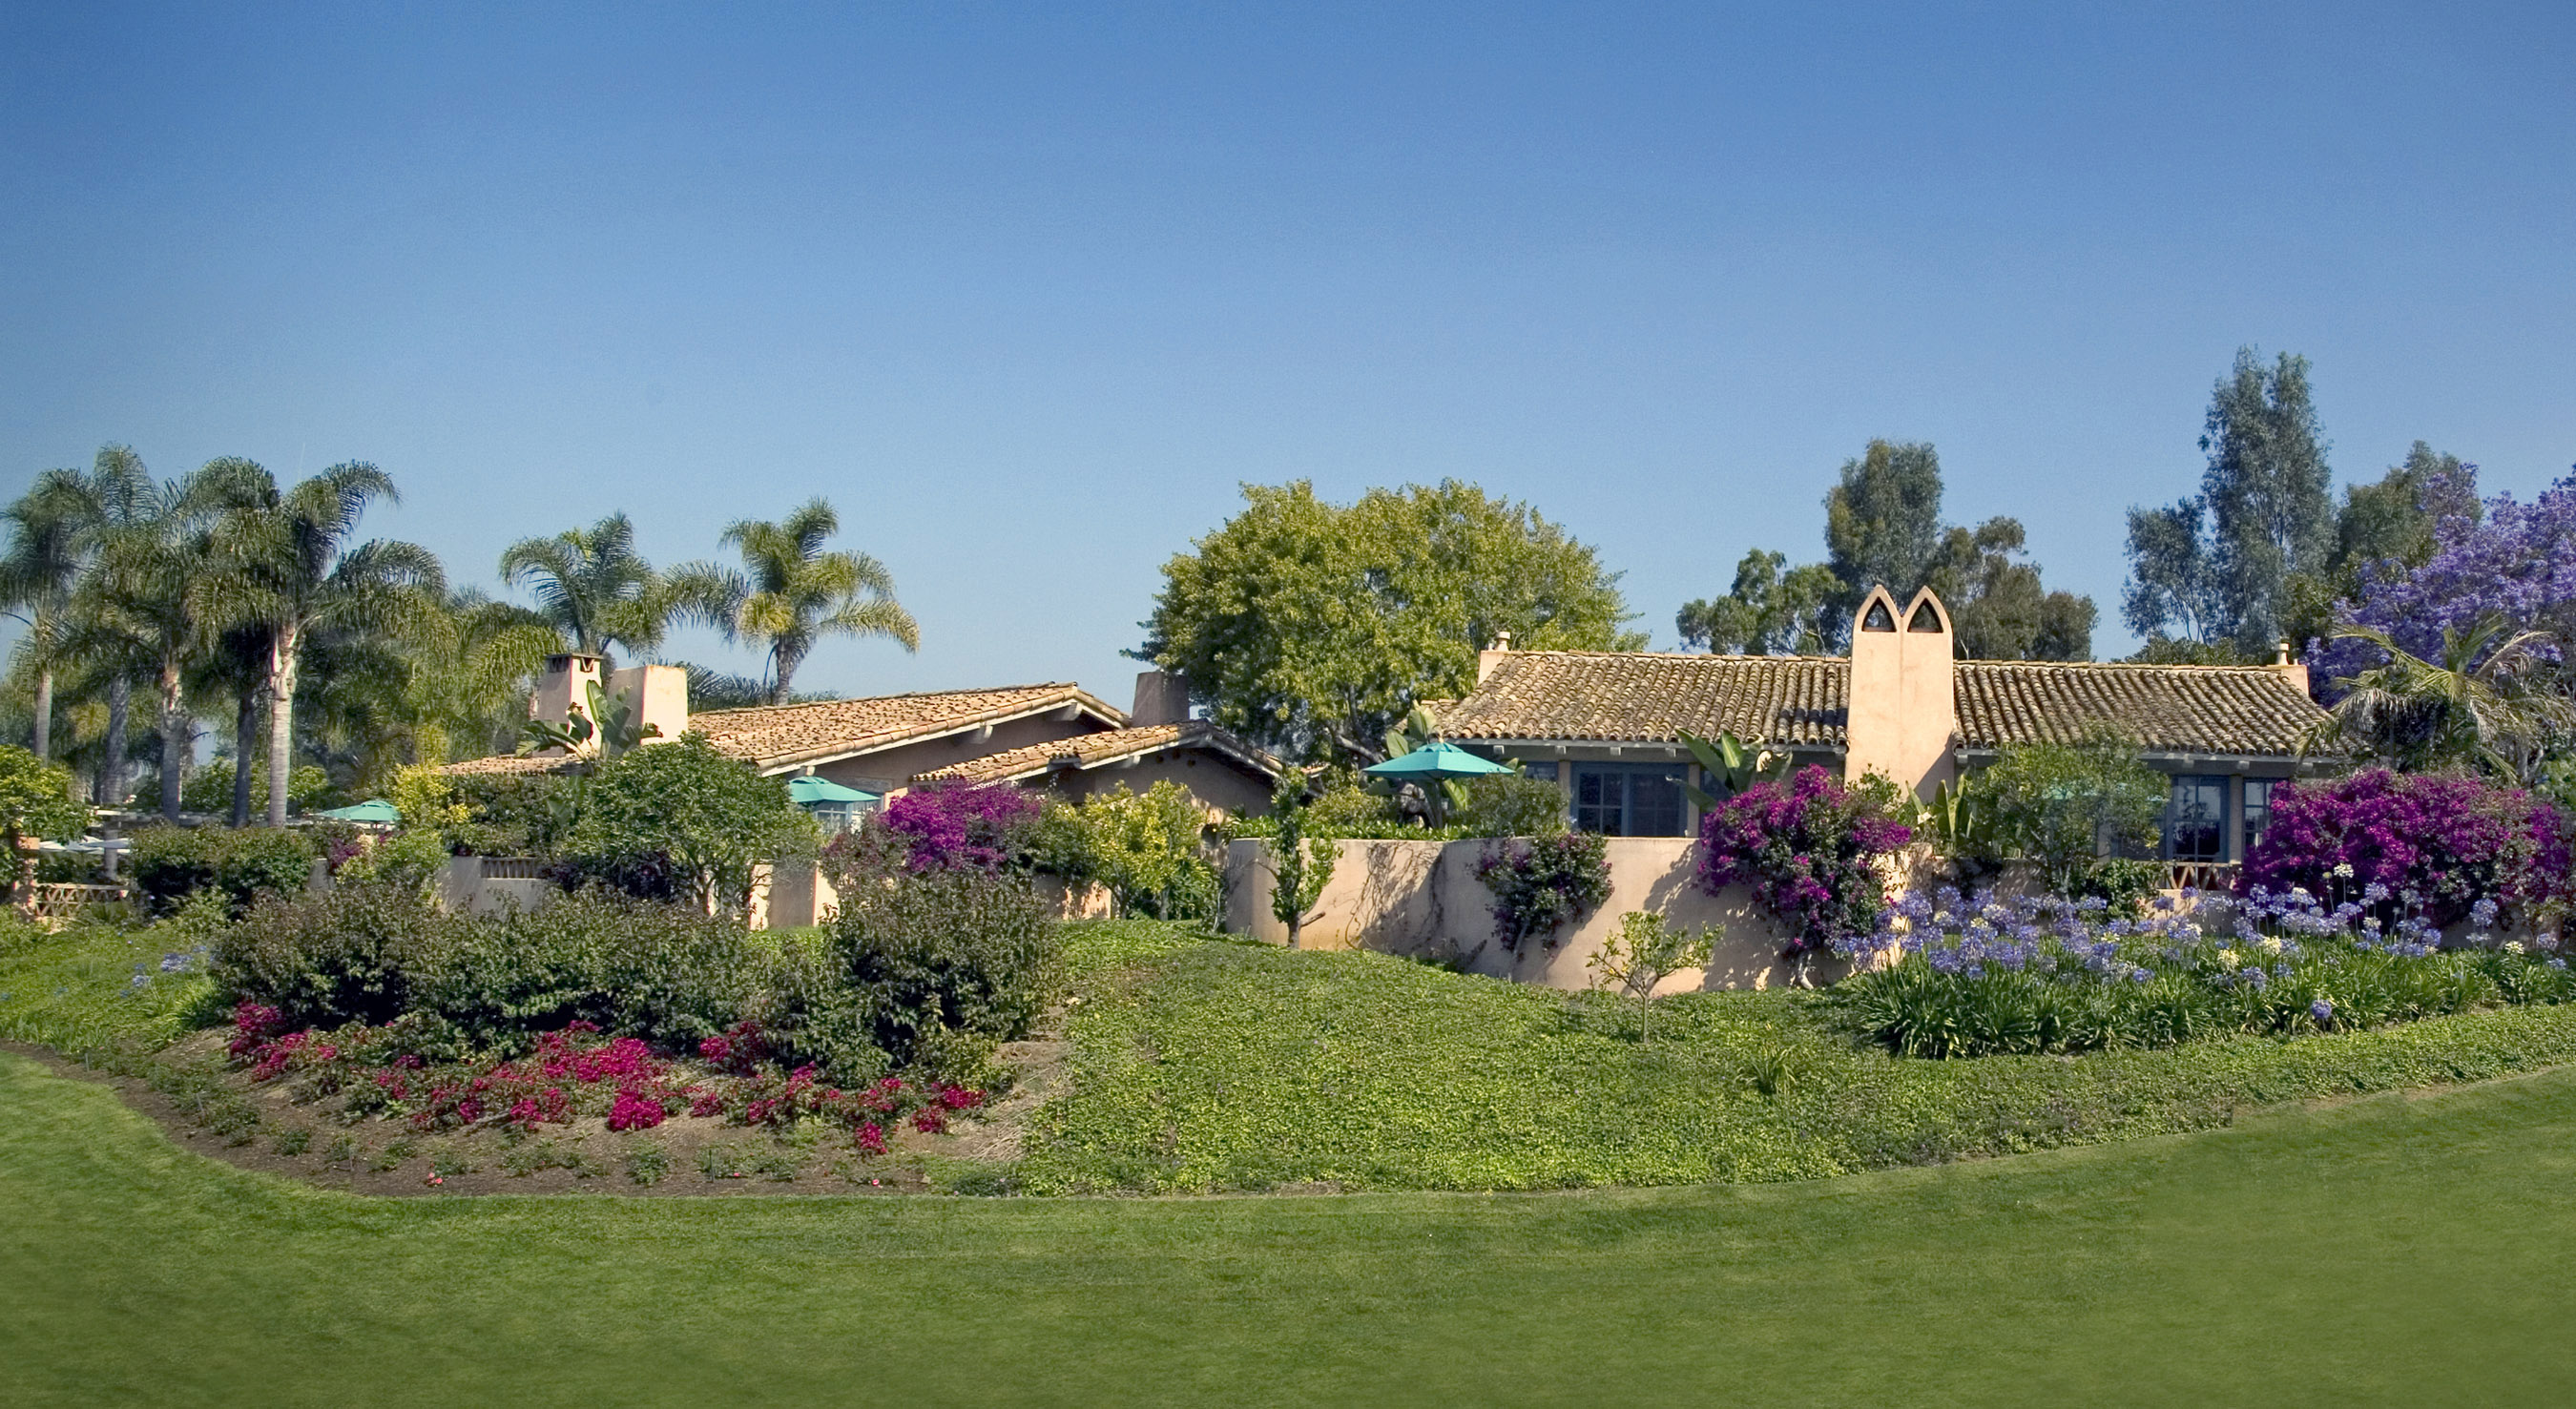 Rancho Valencia, an hotel in Rancho Santa Fe, California is shown in this June 2007 photo.